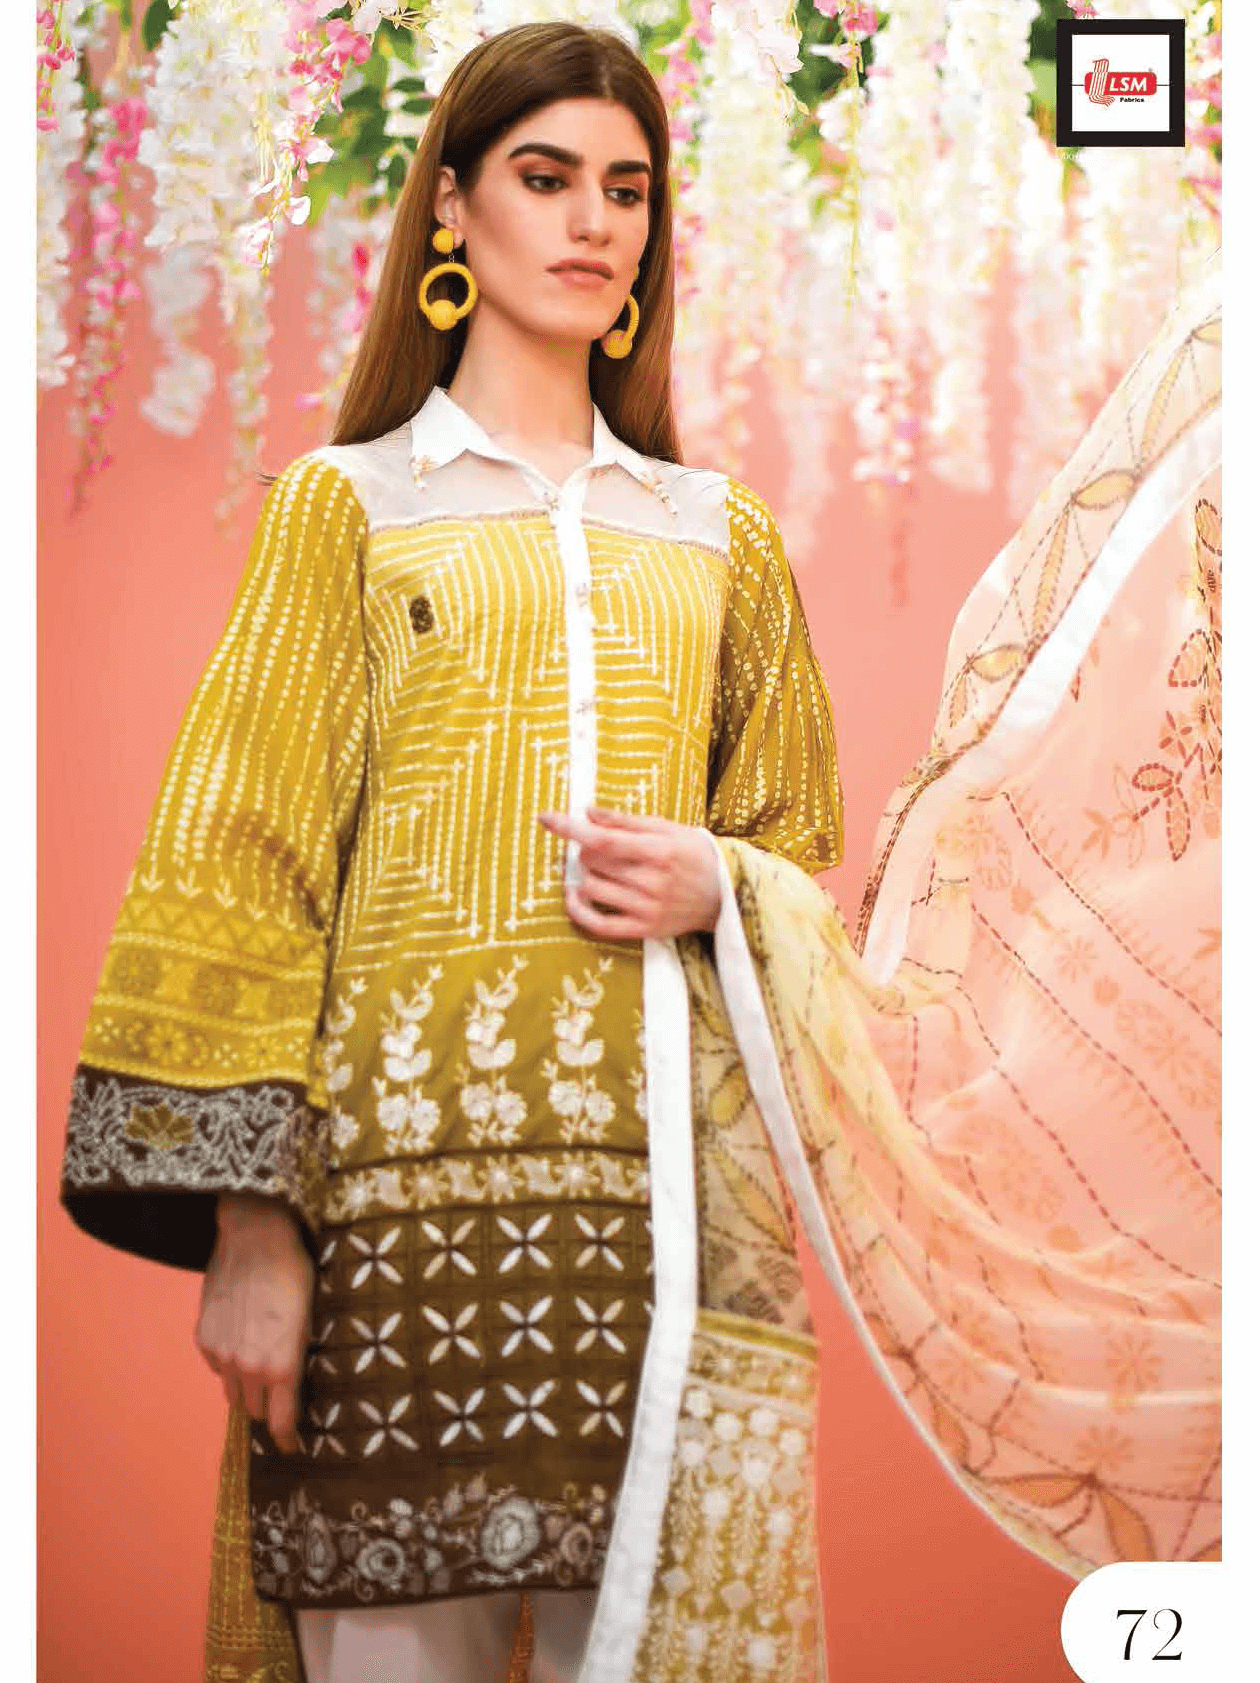 Lakhany Luxury Embroidered Lawn 2019 Unstitched 3PC Suit LTD 001 - FaisalFabrics.pk